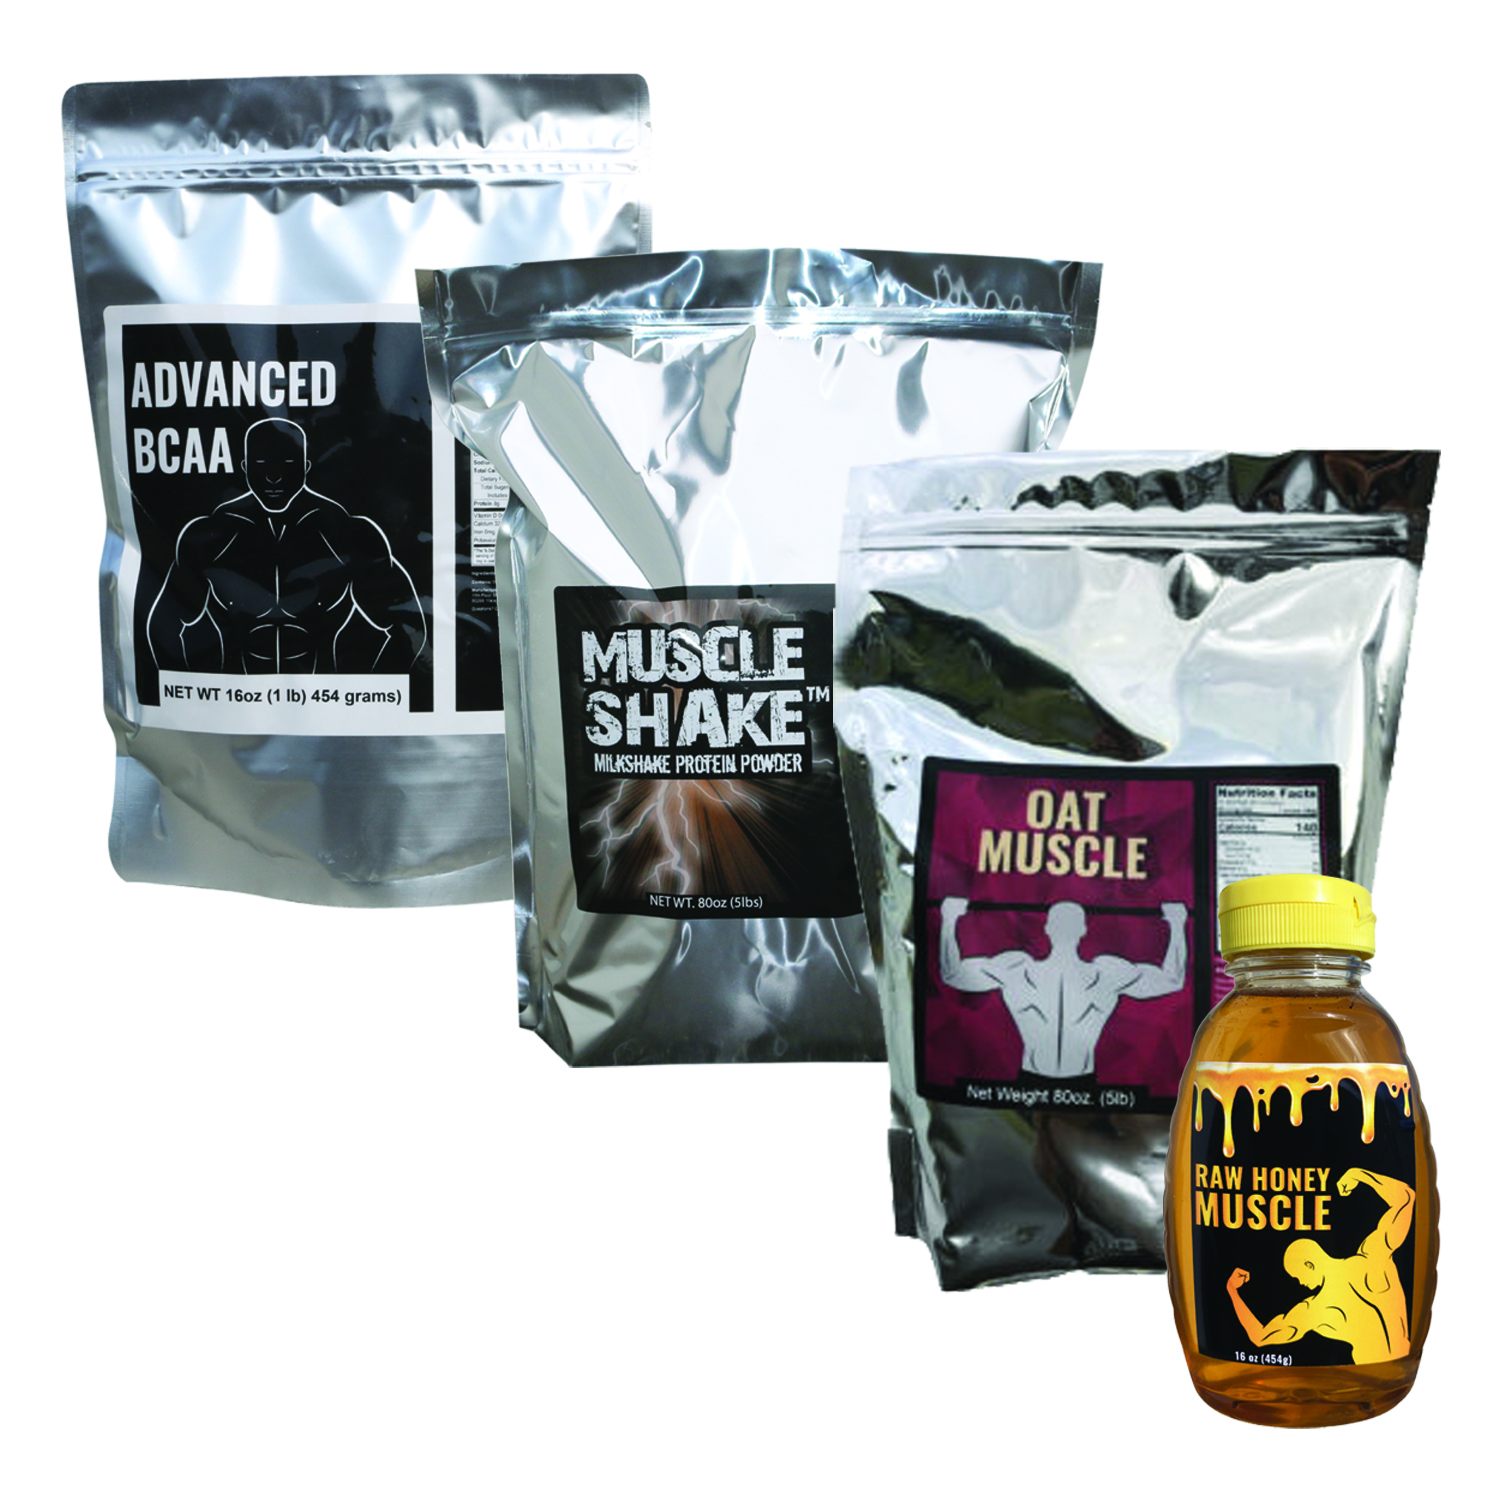 Weight Gain Supplements Gain Muscle Not Fat 30 Day Supply